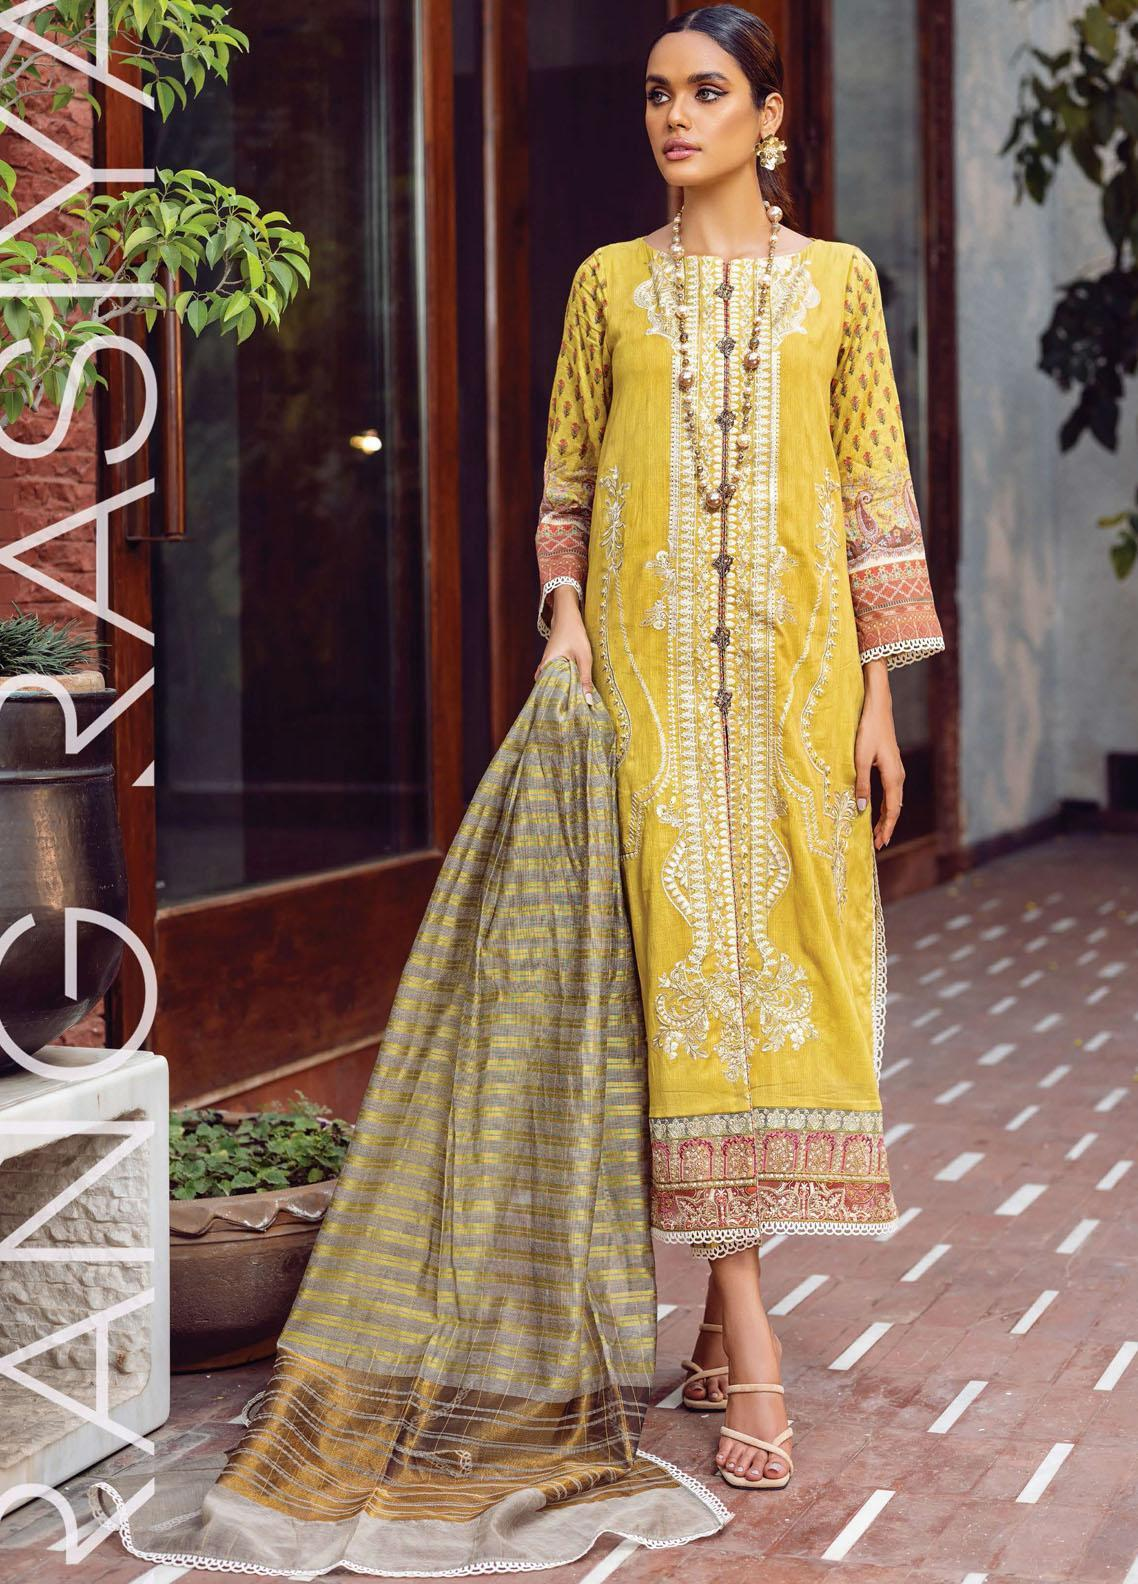 Florence By Rang Rasiya Embroidered Lawn Suits Unstitched 3 Piece RR21FF 12 Uraan - Festive Collection